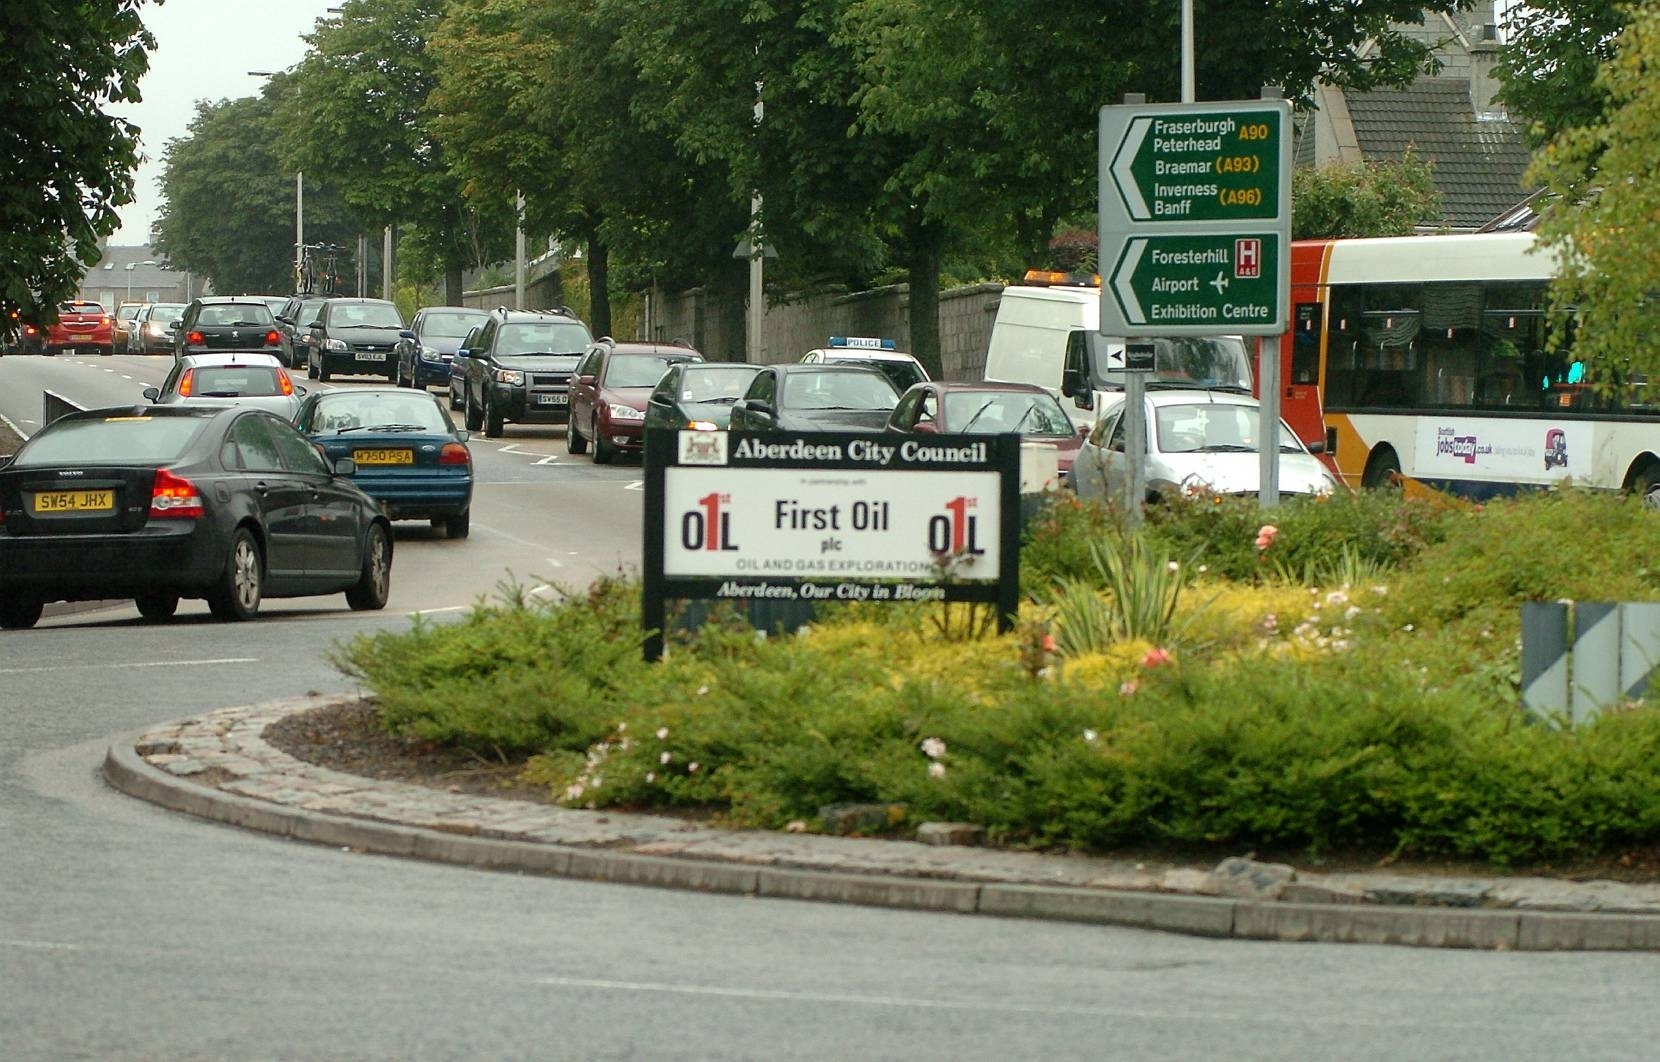 The Broomhill Road roundabout is one of the features under consideration